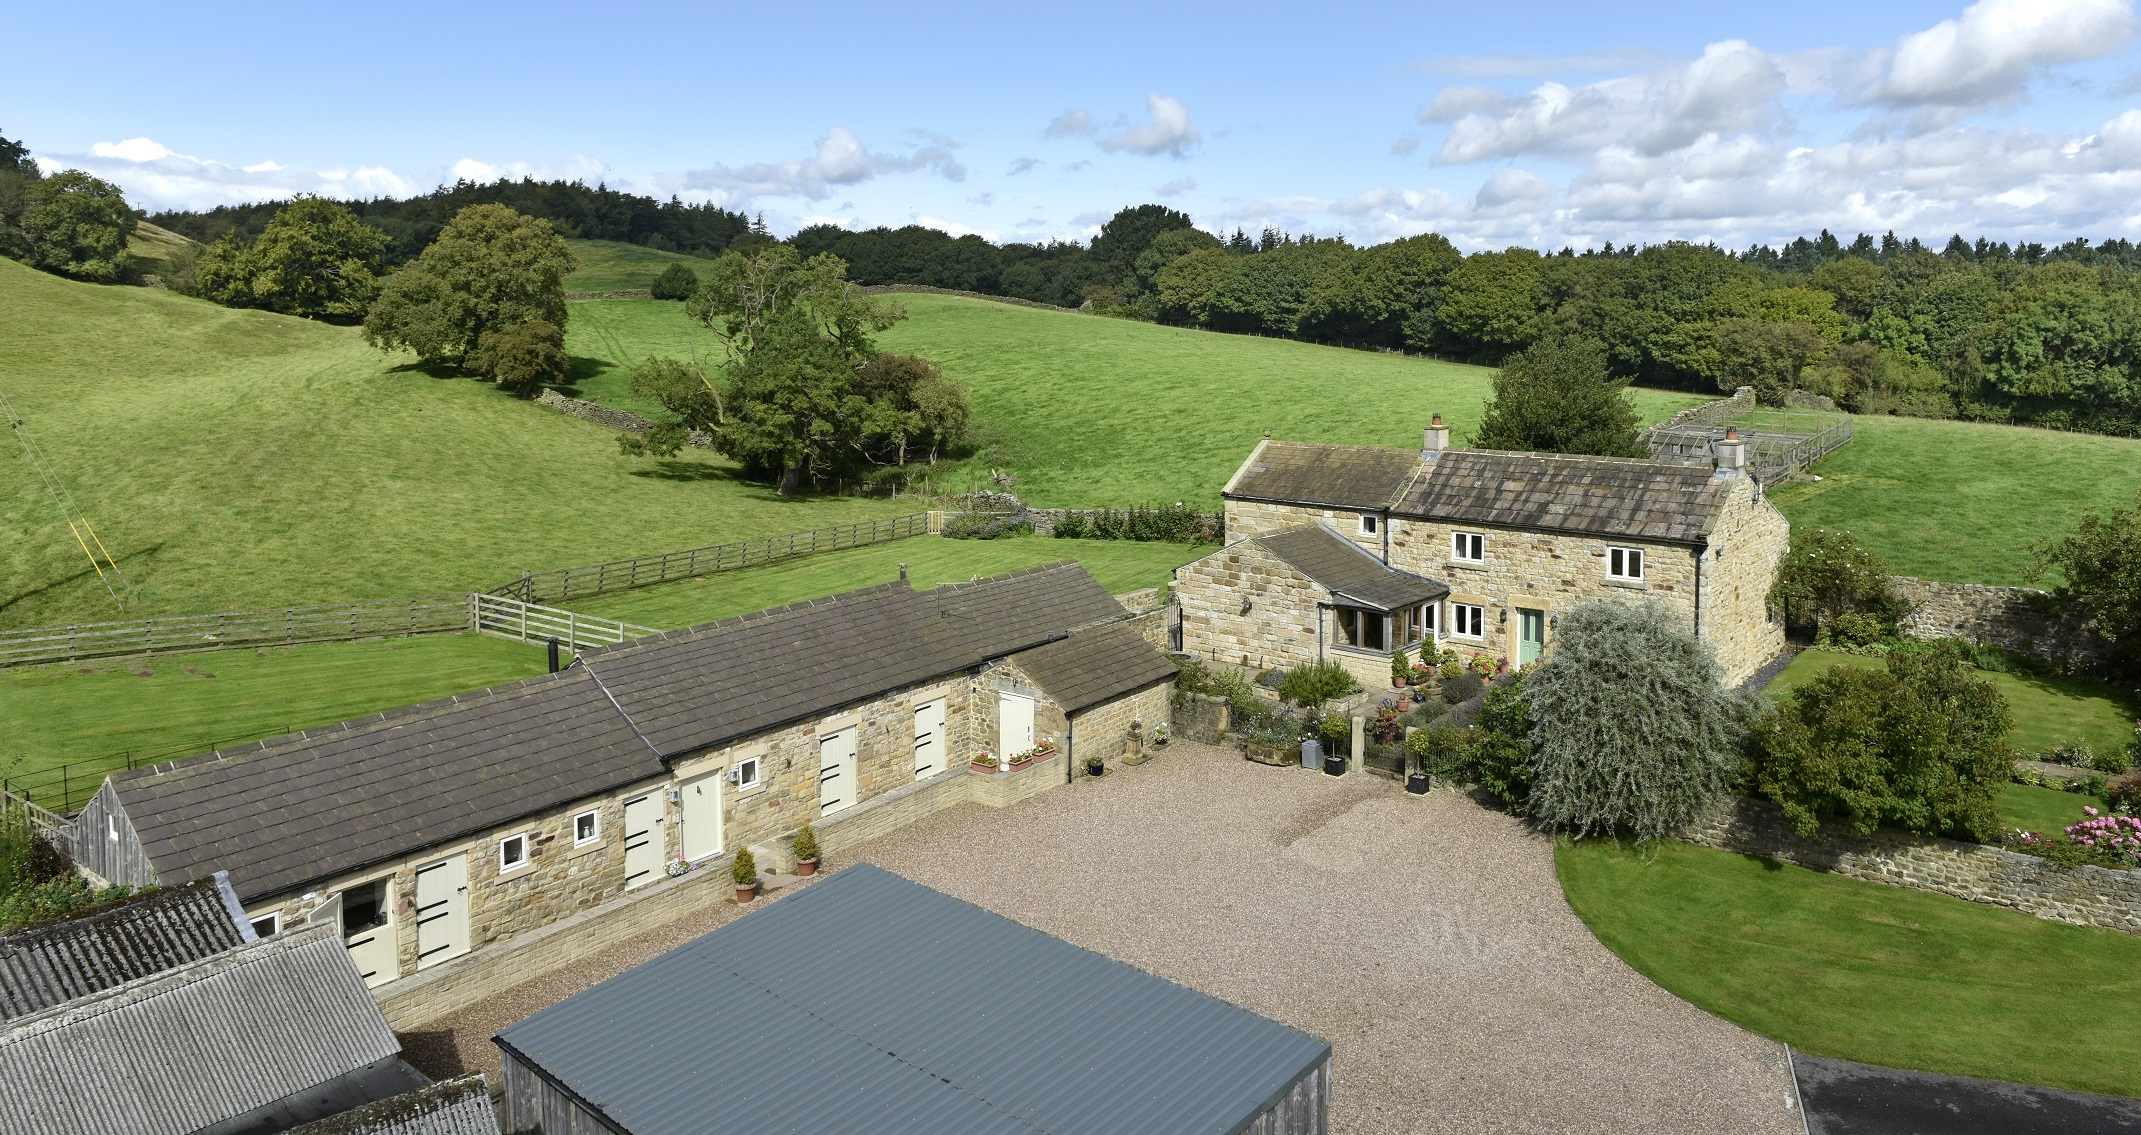 Hill Top Farm & Stables is on the market at a guide price of £895,000